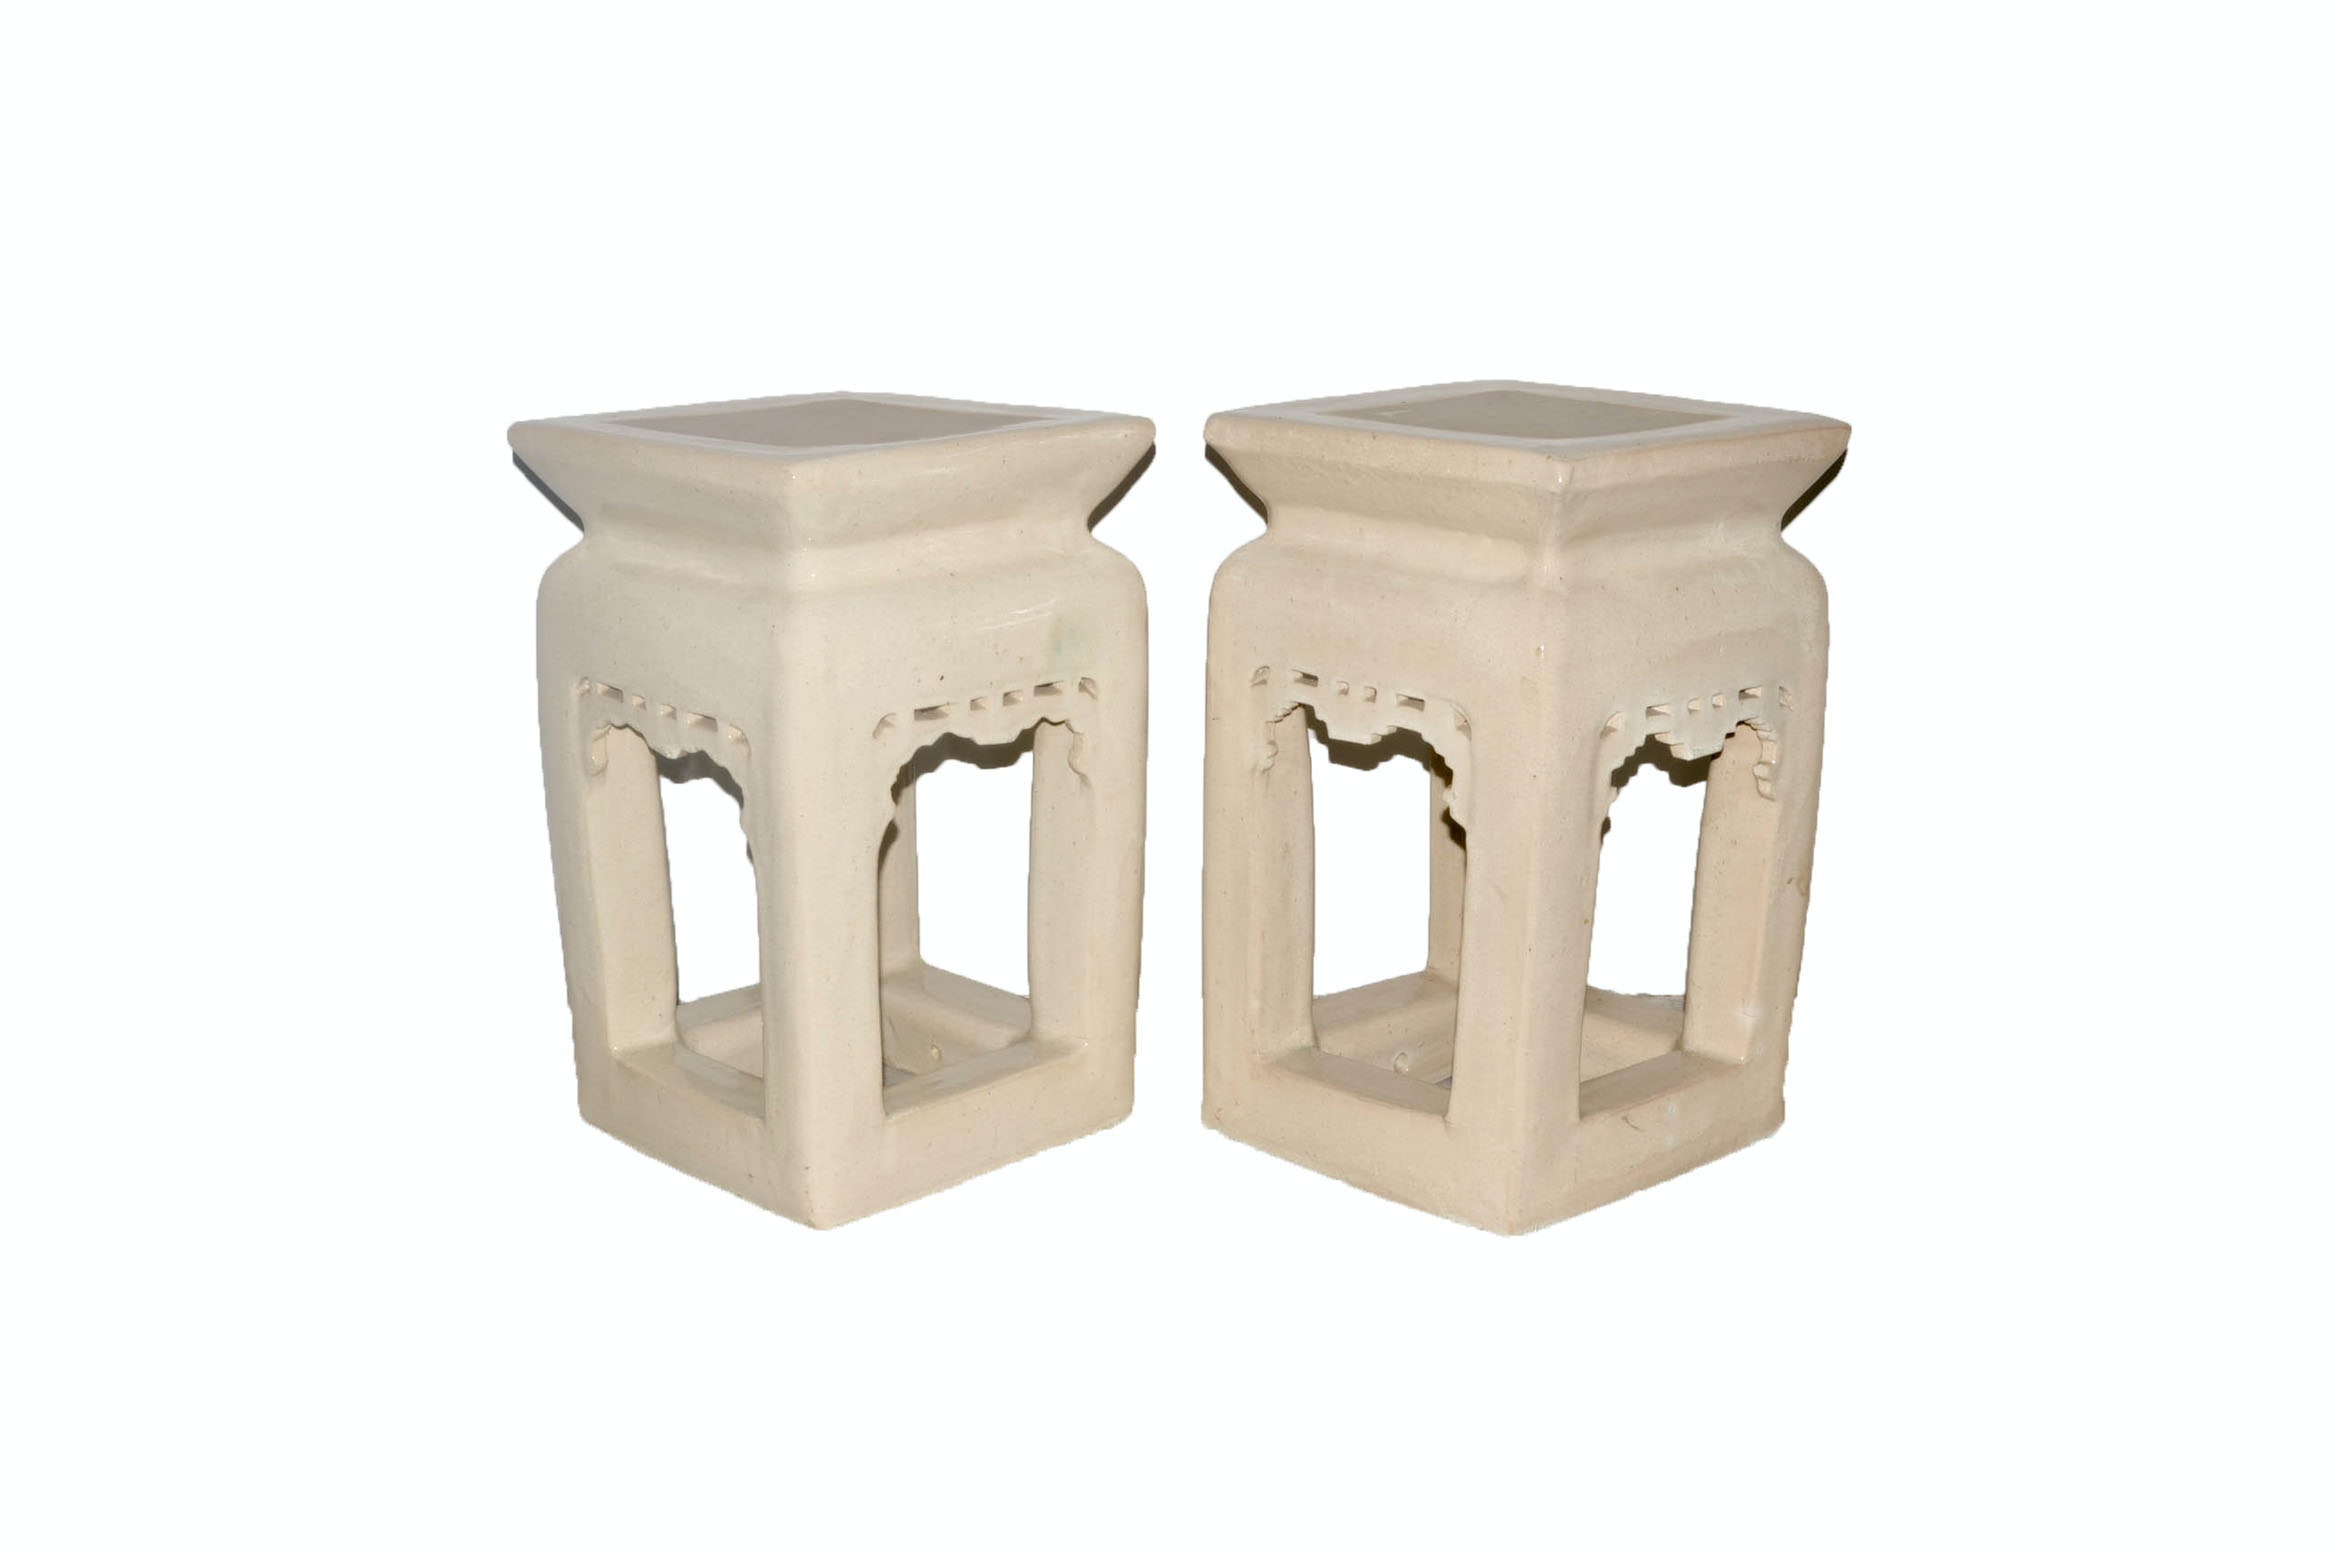 Pair of Small Ceramic Side Tables